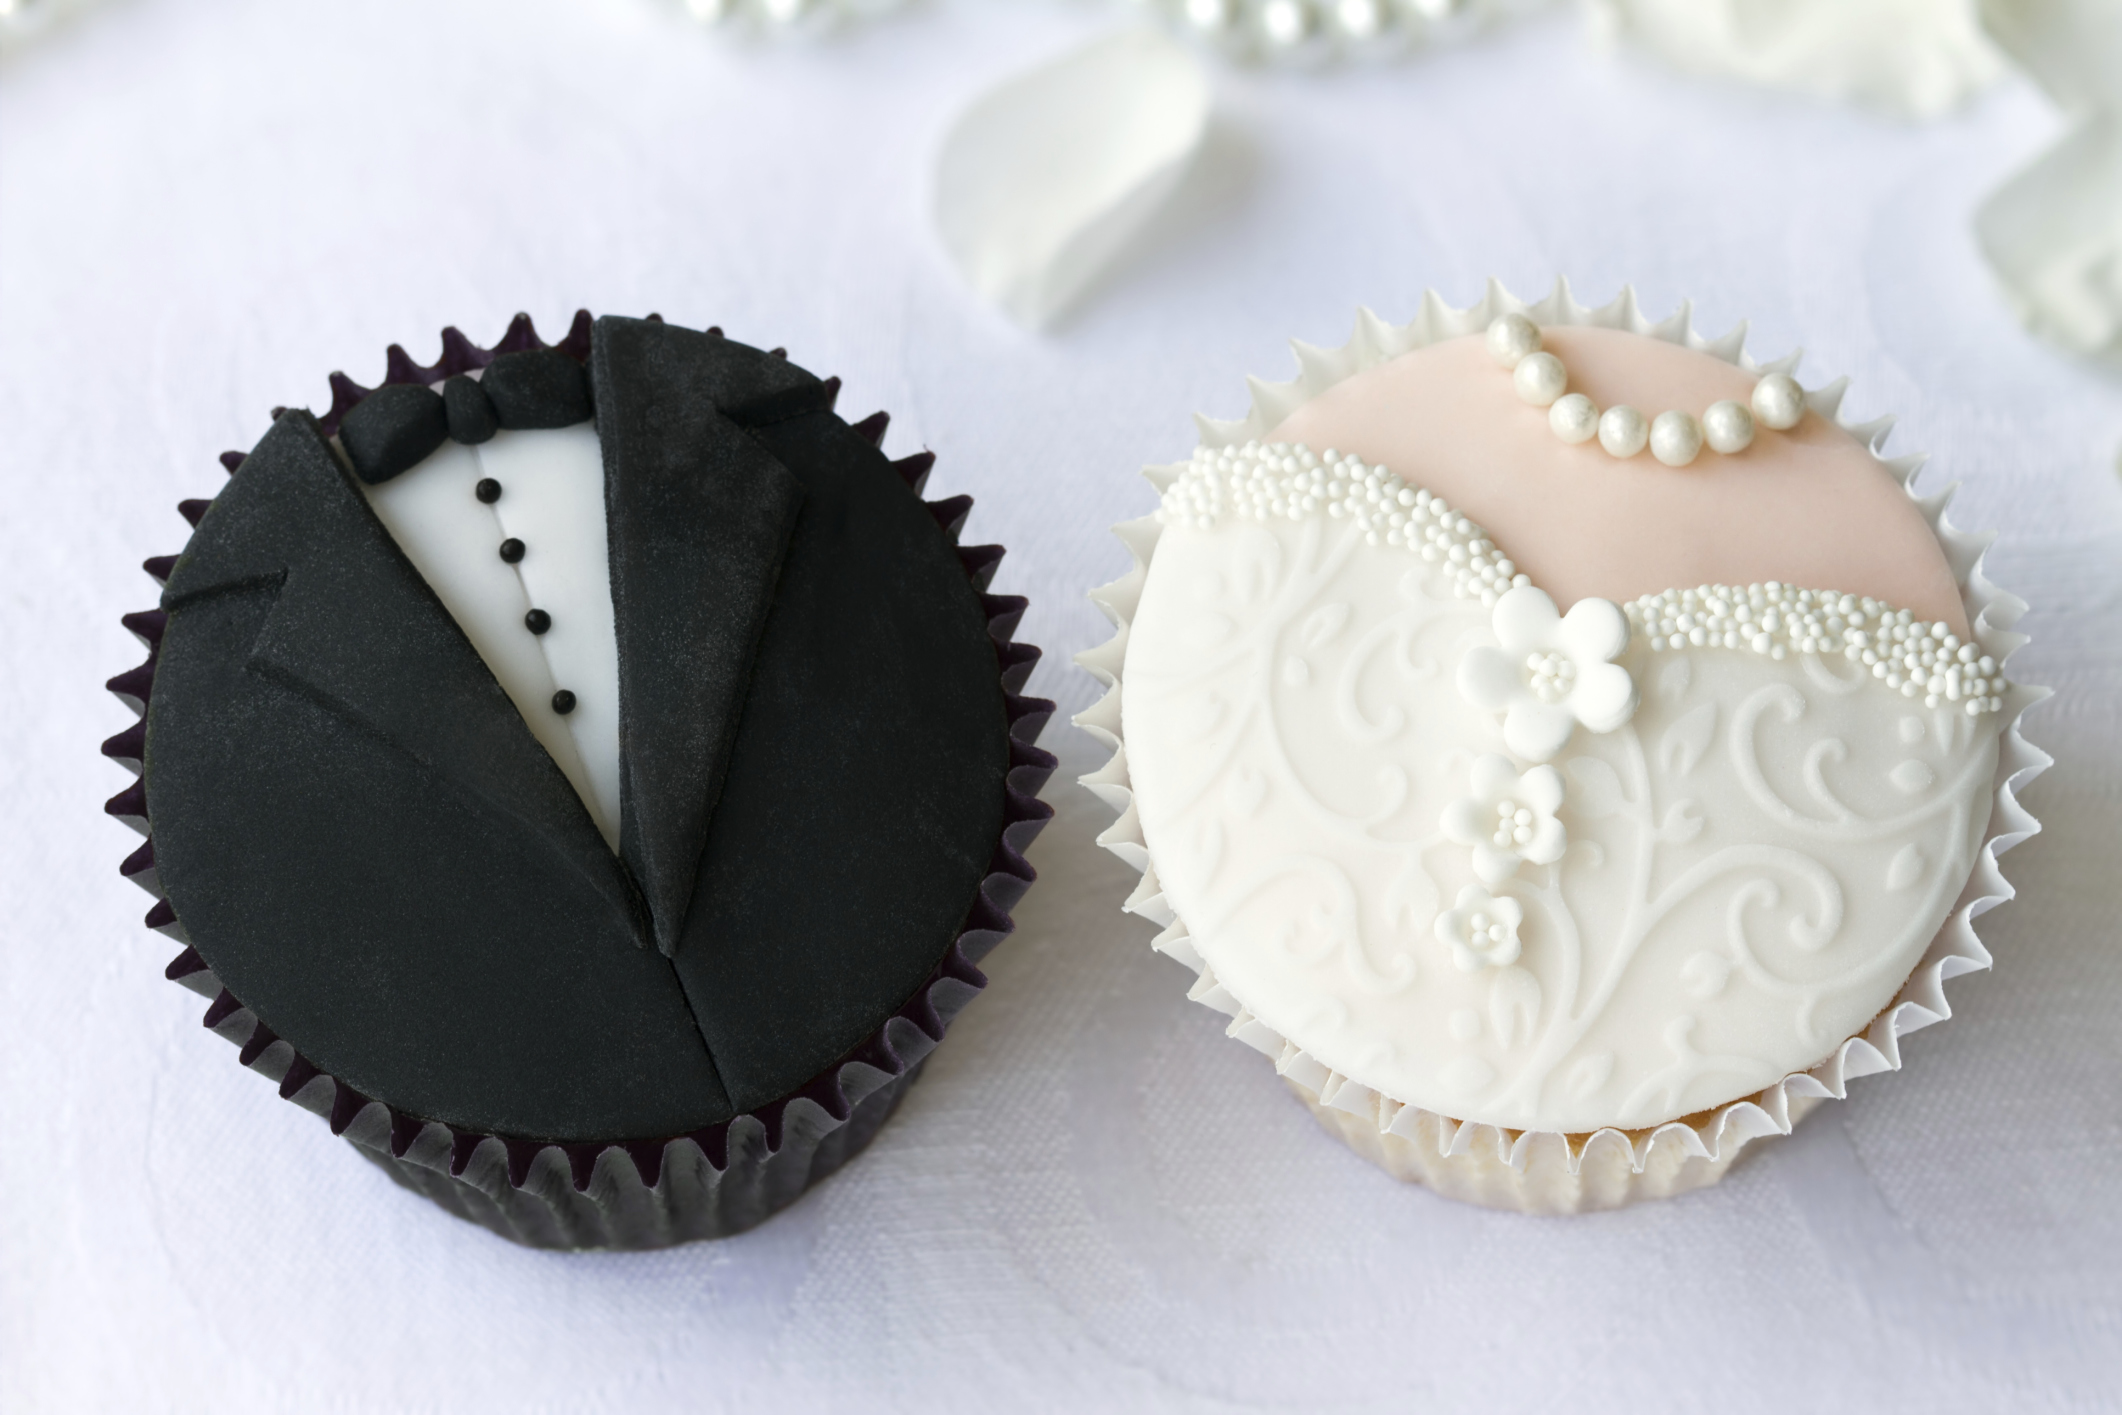 Edible wedding favors - Articles - Easy Weddings